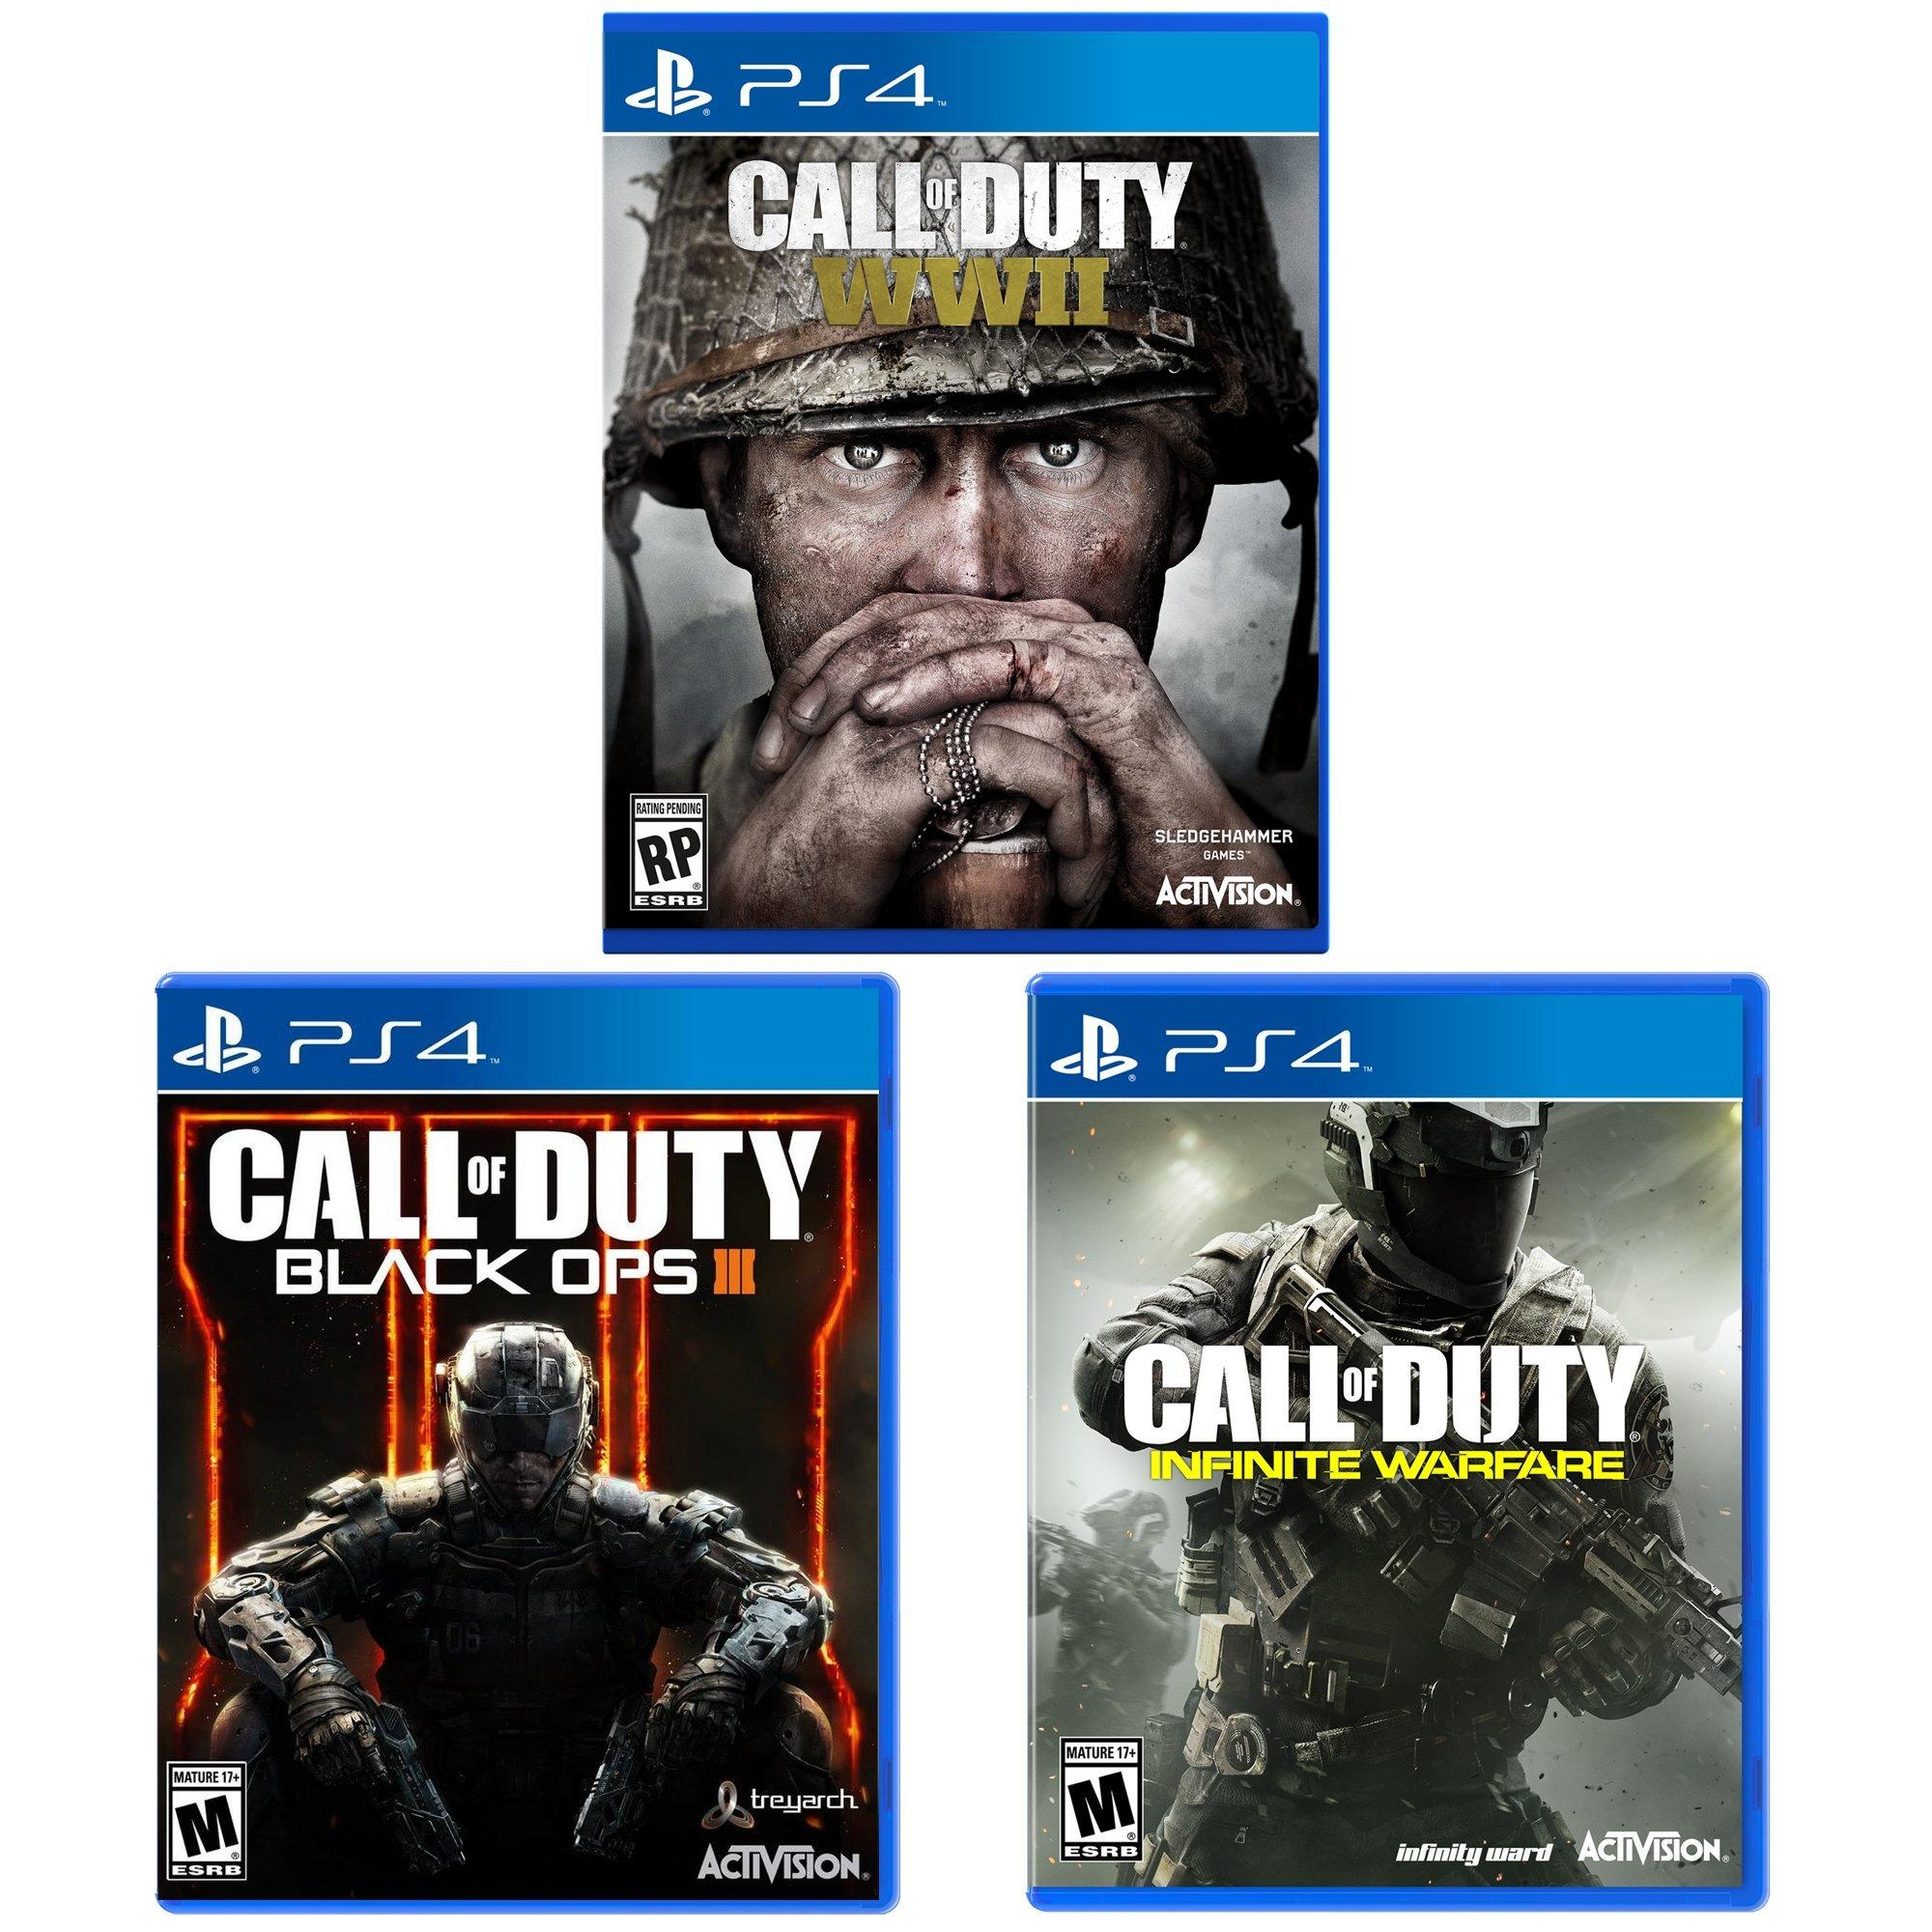 Playstation 4 Call Of Duty Blast From The Past Game Bundle Used Playstation 4 Gamestop